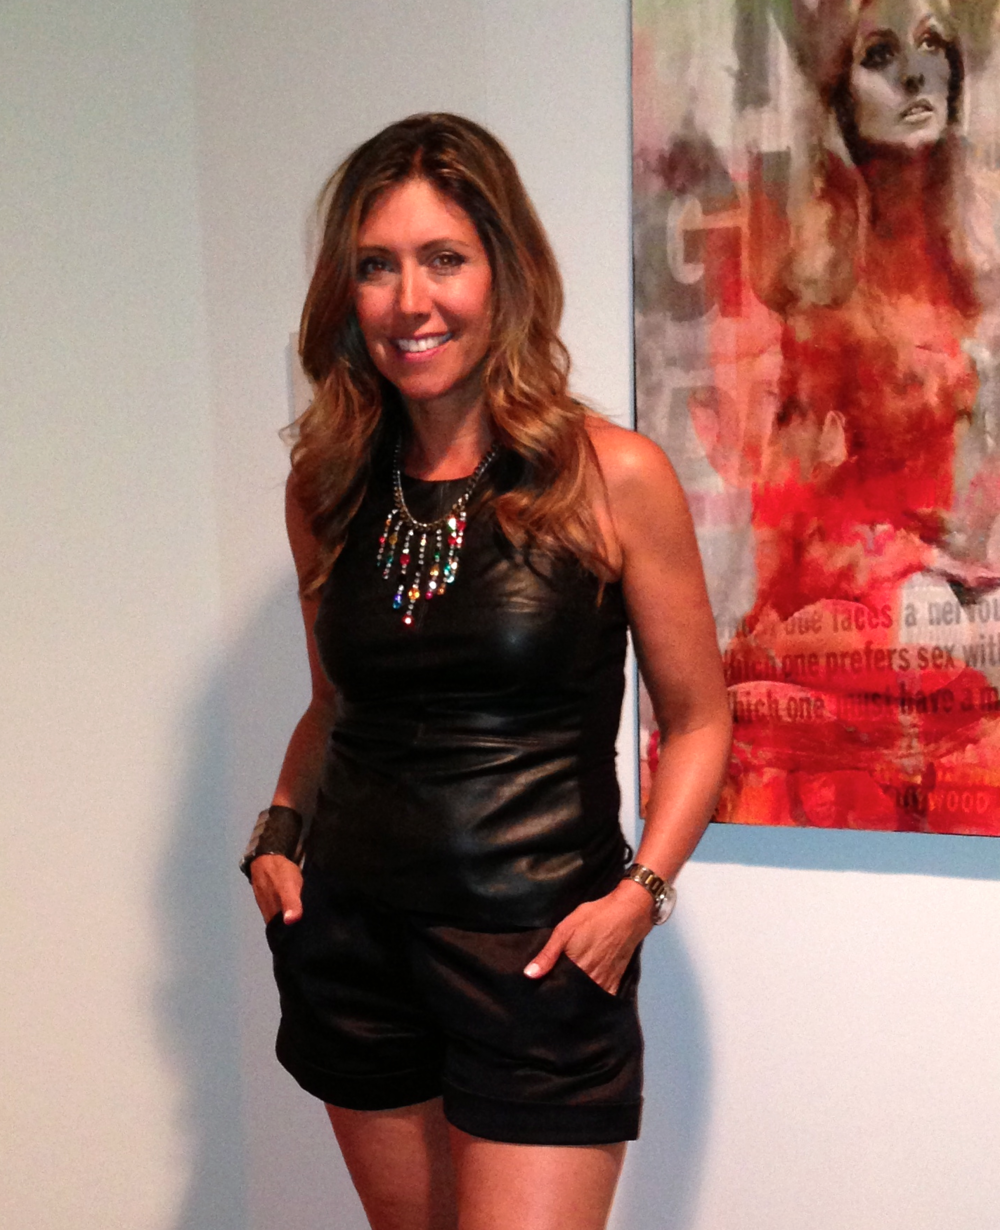 Faux leather tank top: Bailey 44, $167 100% Silk Crepe Black Satin and leather shorts: Ramy Brook, $395 Jewlery: Neckllace by Dannijo Cuff by Kelly Gerber Jewelry